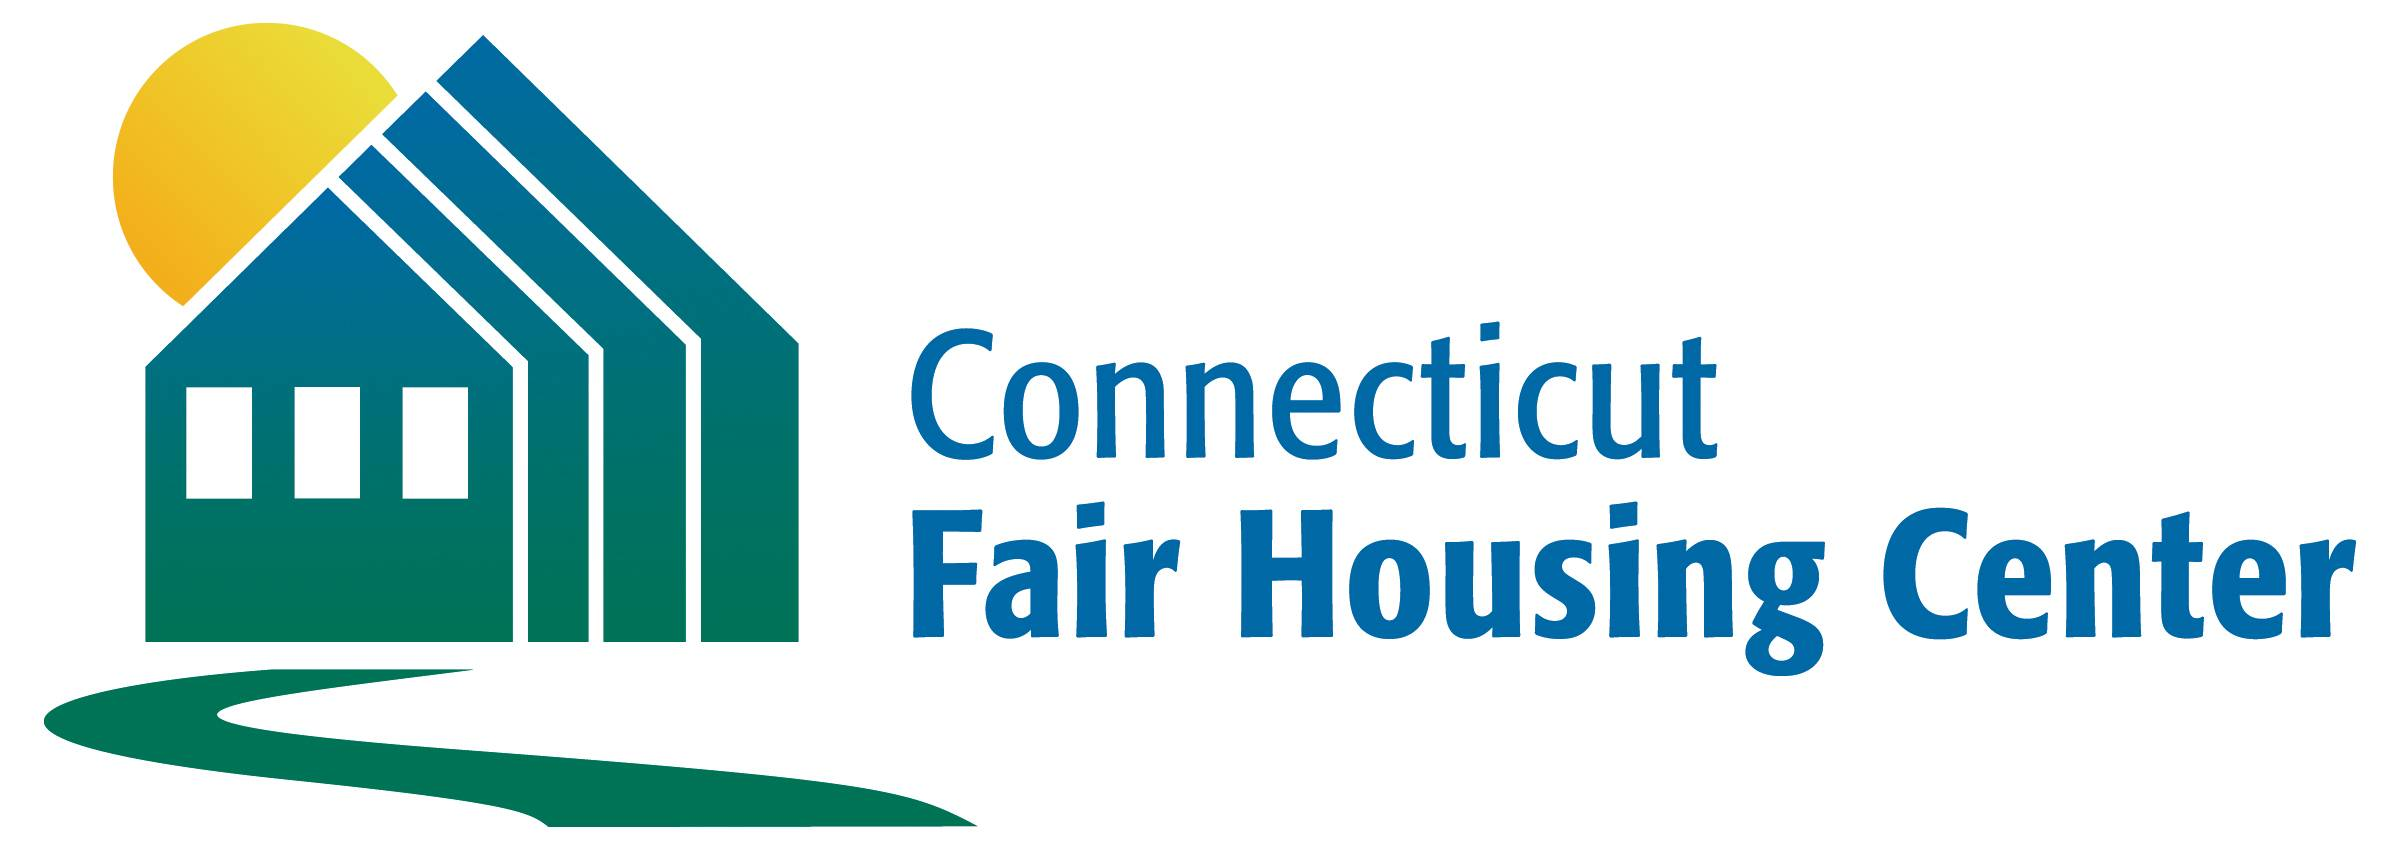 Logo de Connecticut Fair Housing Center